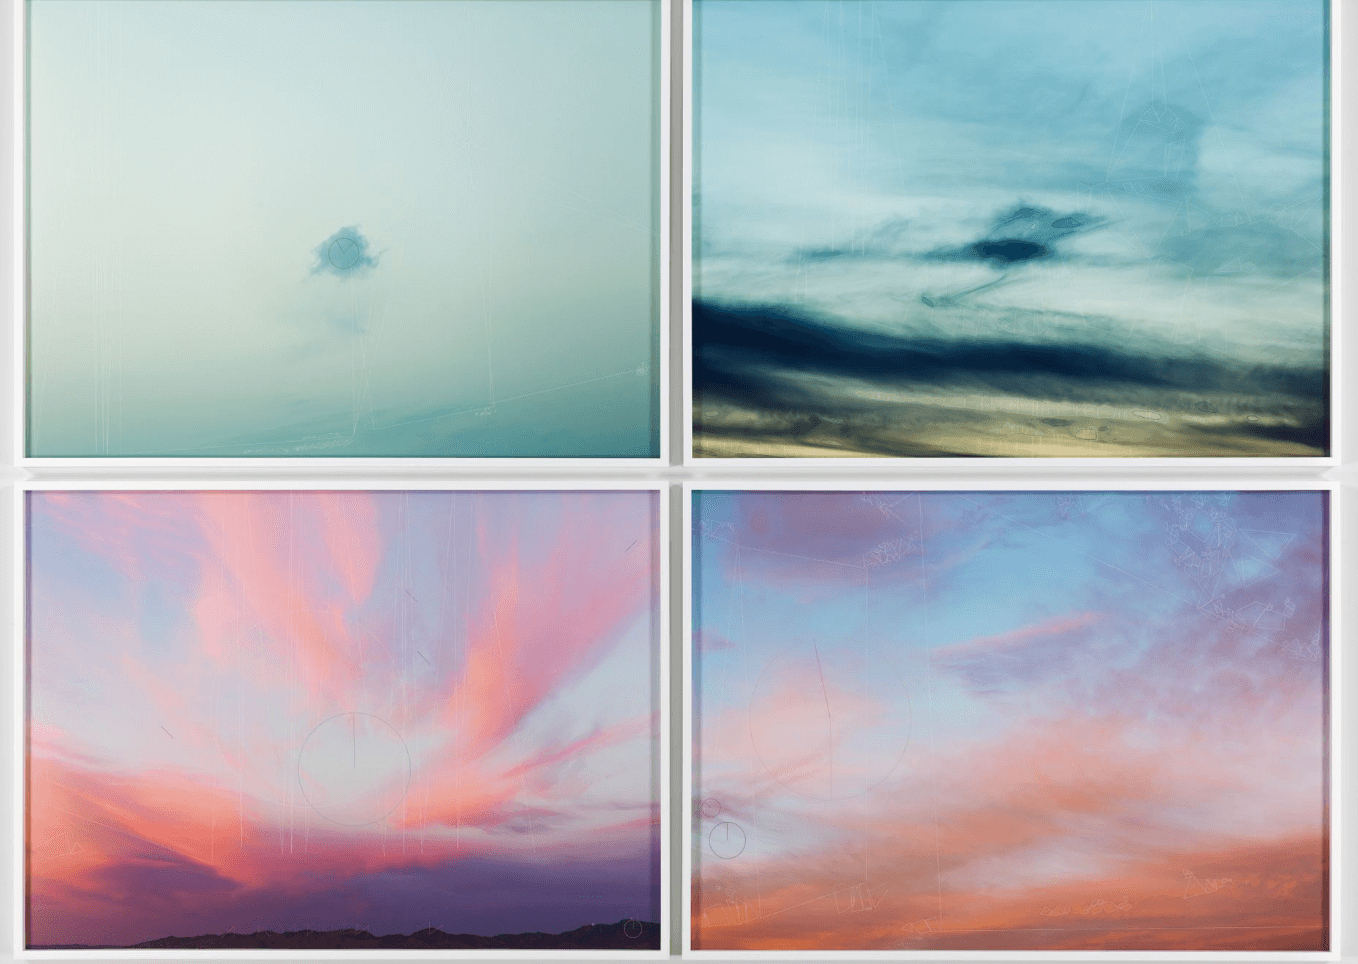 Four Clouds - The four skyscapes are overlaid with strokes and lines that show what four different computer vision algorithms are seeing in the images. The algorithms are looking for unique key-points—areas of interest—and are attempting to simplify the underlying photograph into a series of sections.